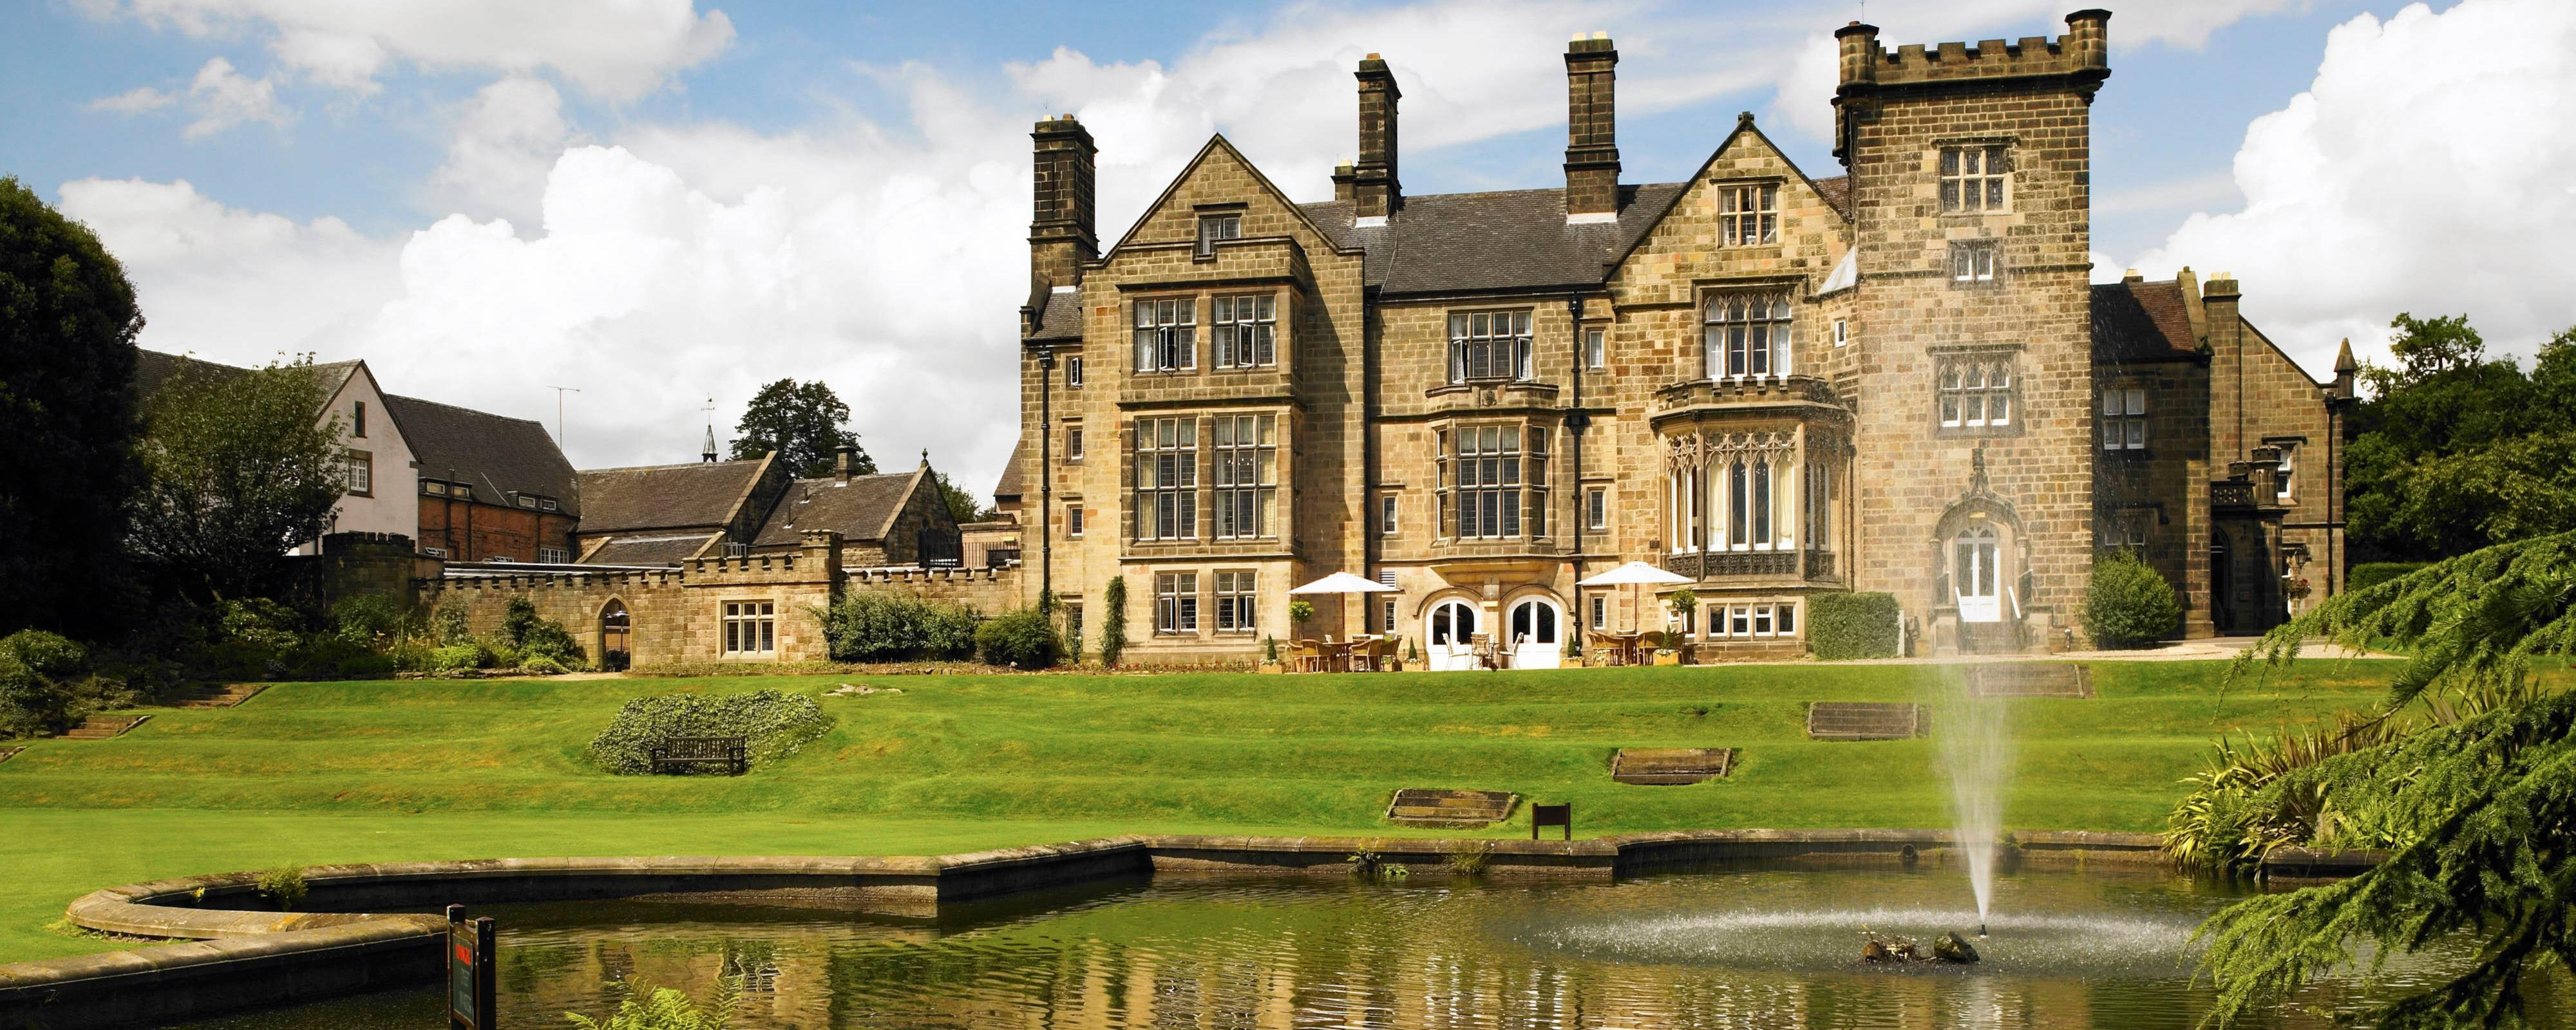 Marriott Breadsall Priory Hotel and Country Club